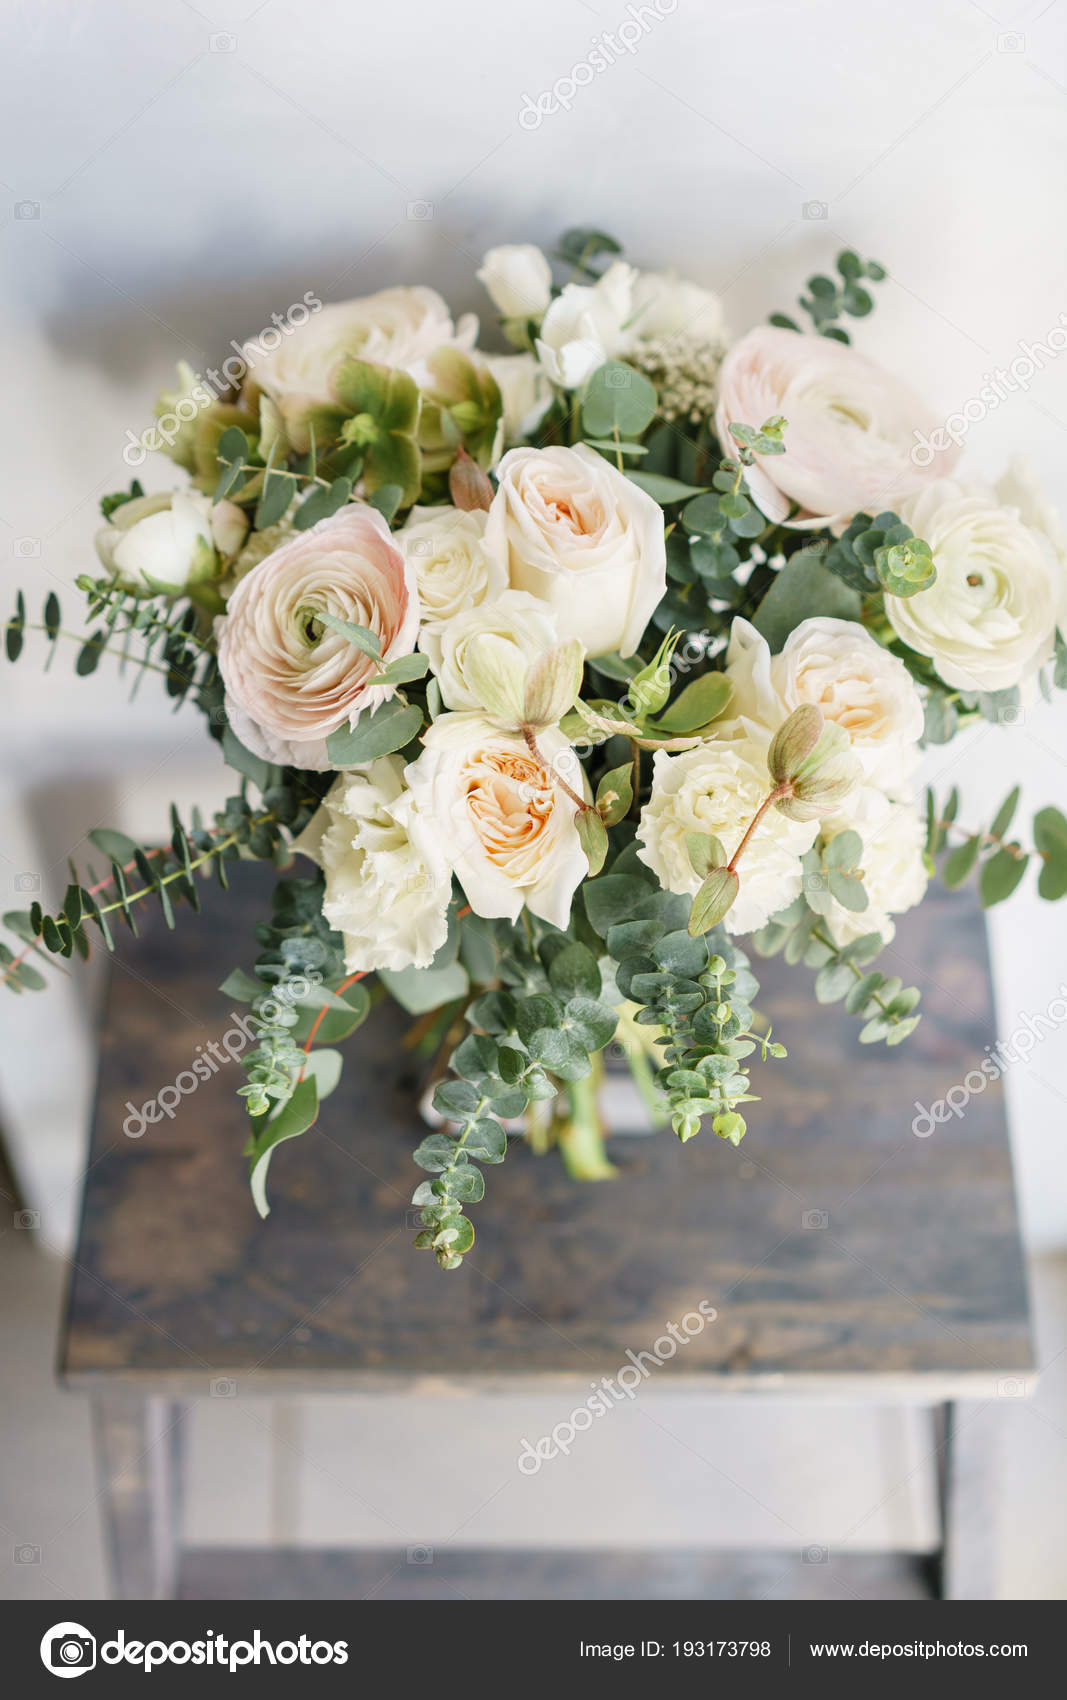 Wedding Bouquet Of White Roses And Buttercup On A Wooden Table Lots